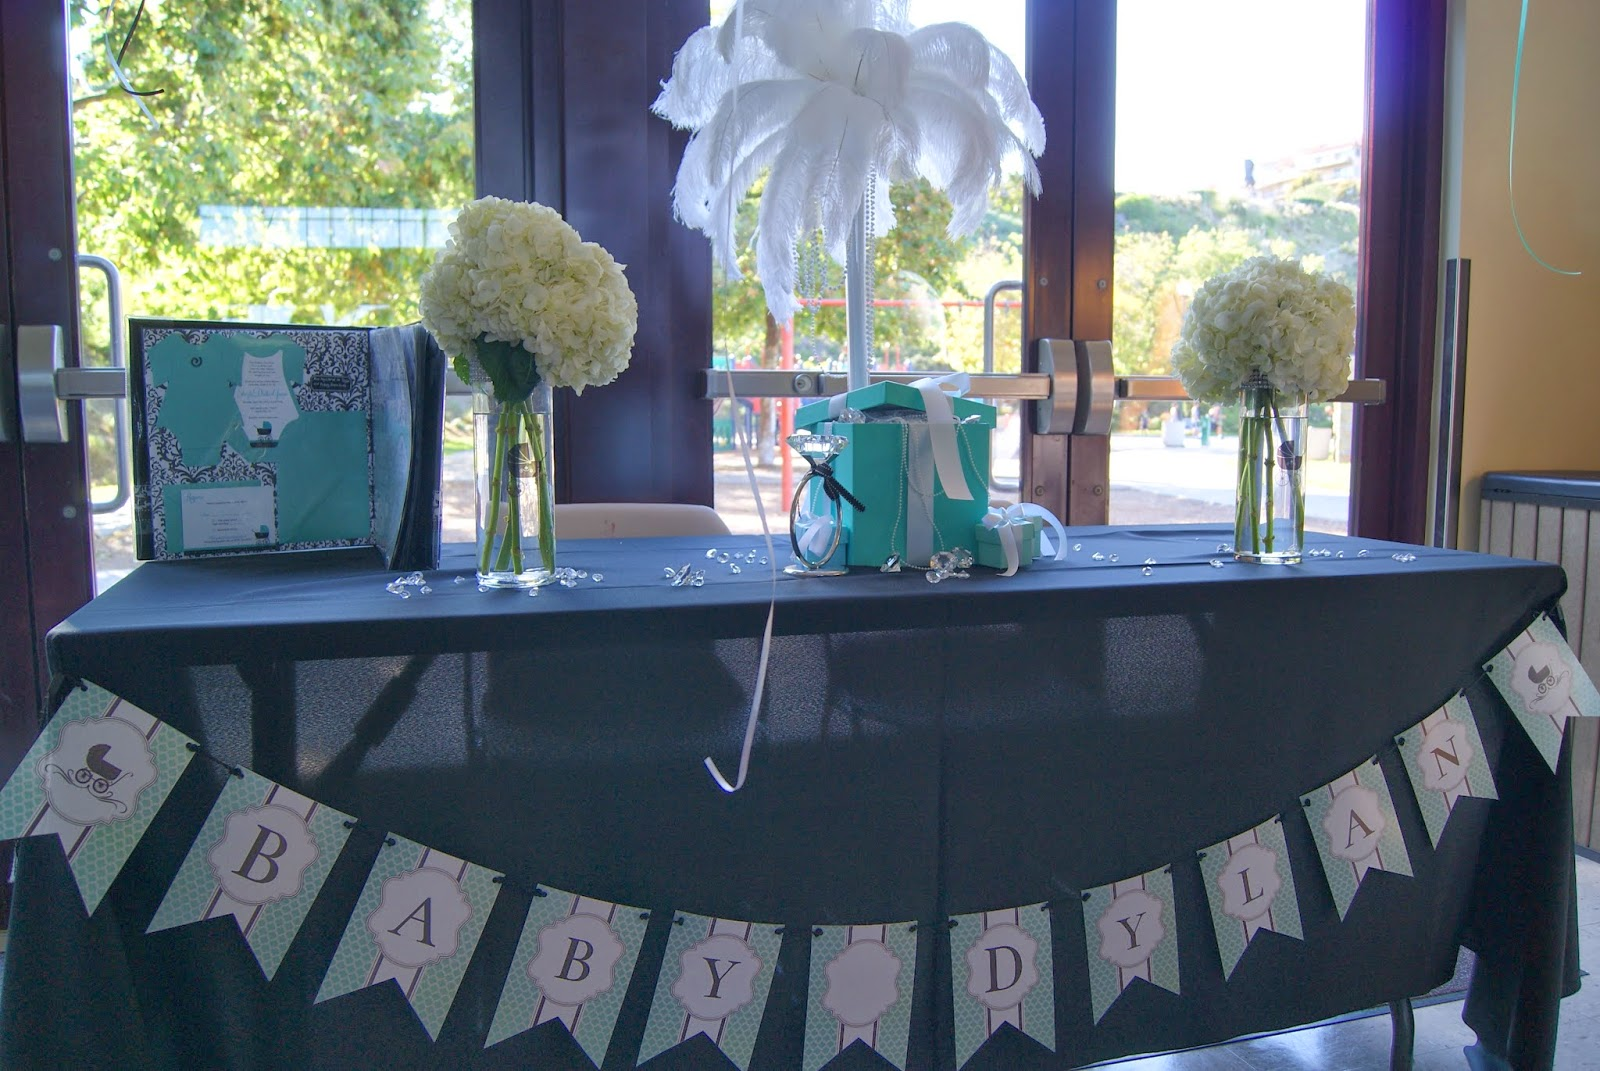 breakfast at tiffany's baby shower, allthingsslim